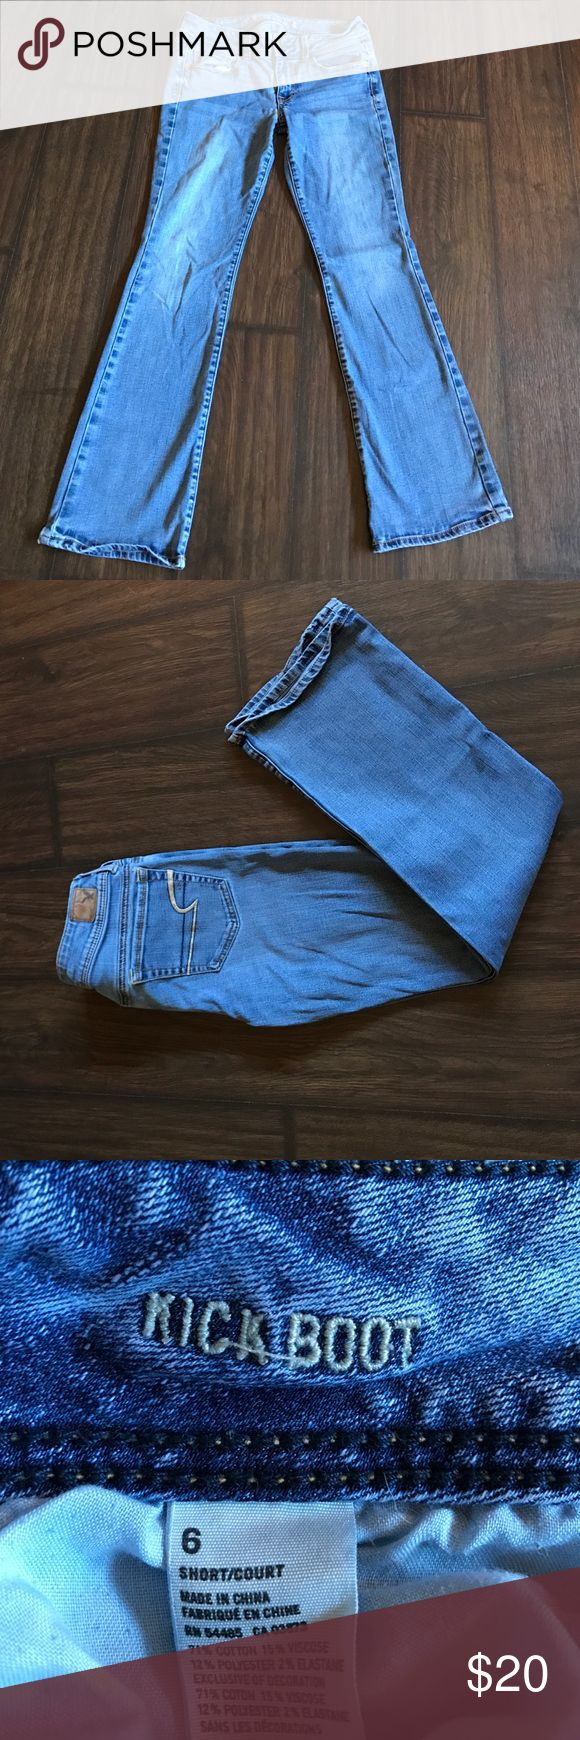 💕SALE💕American Eagle Kick Boot Jeans Size 6 SHORT, light wash American Eagle Kick Boot Jeans, 30 inch inseam. In excellent condition! American Eagle Outfitters Jeans Boot Cut